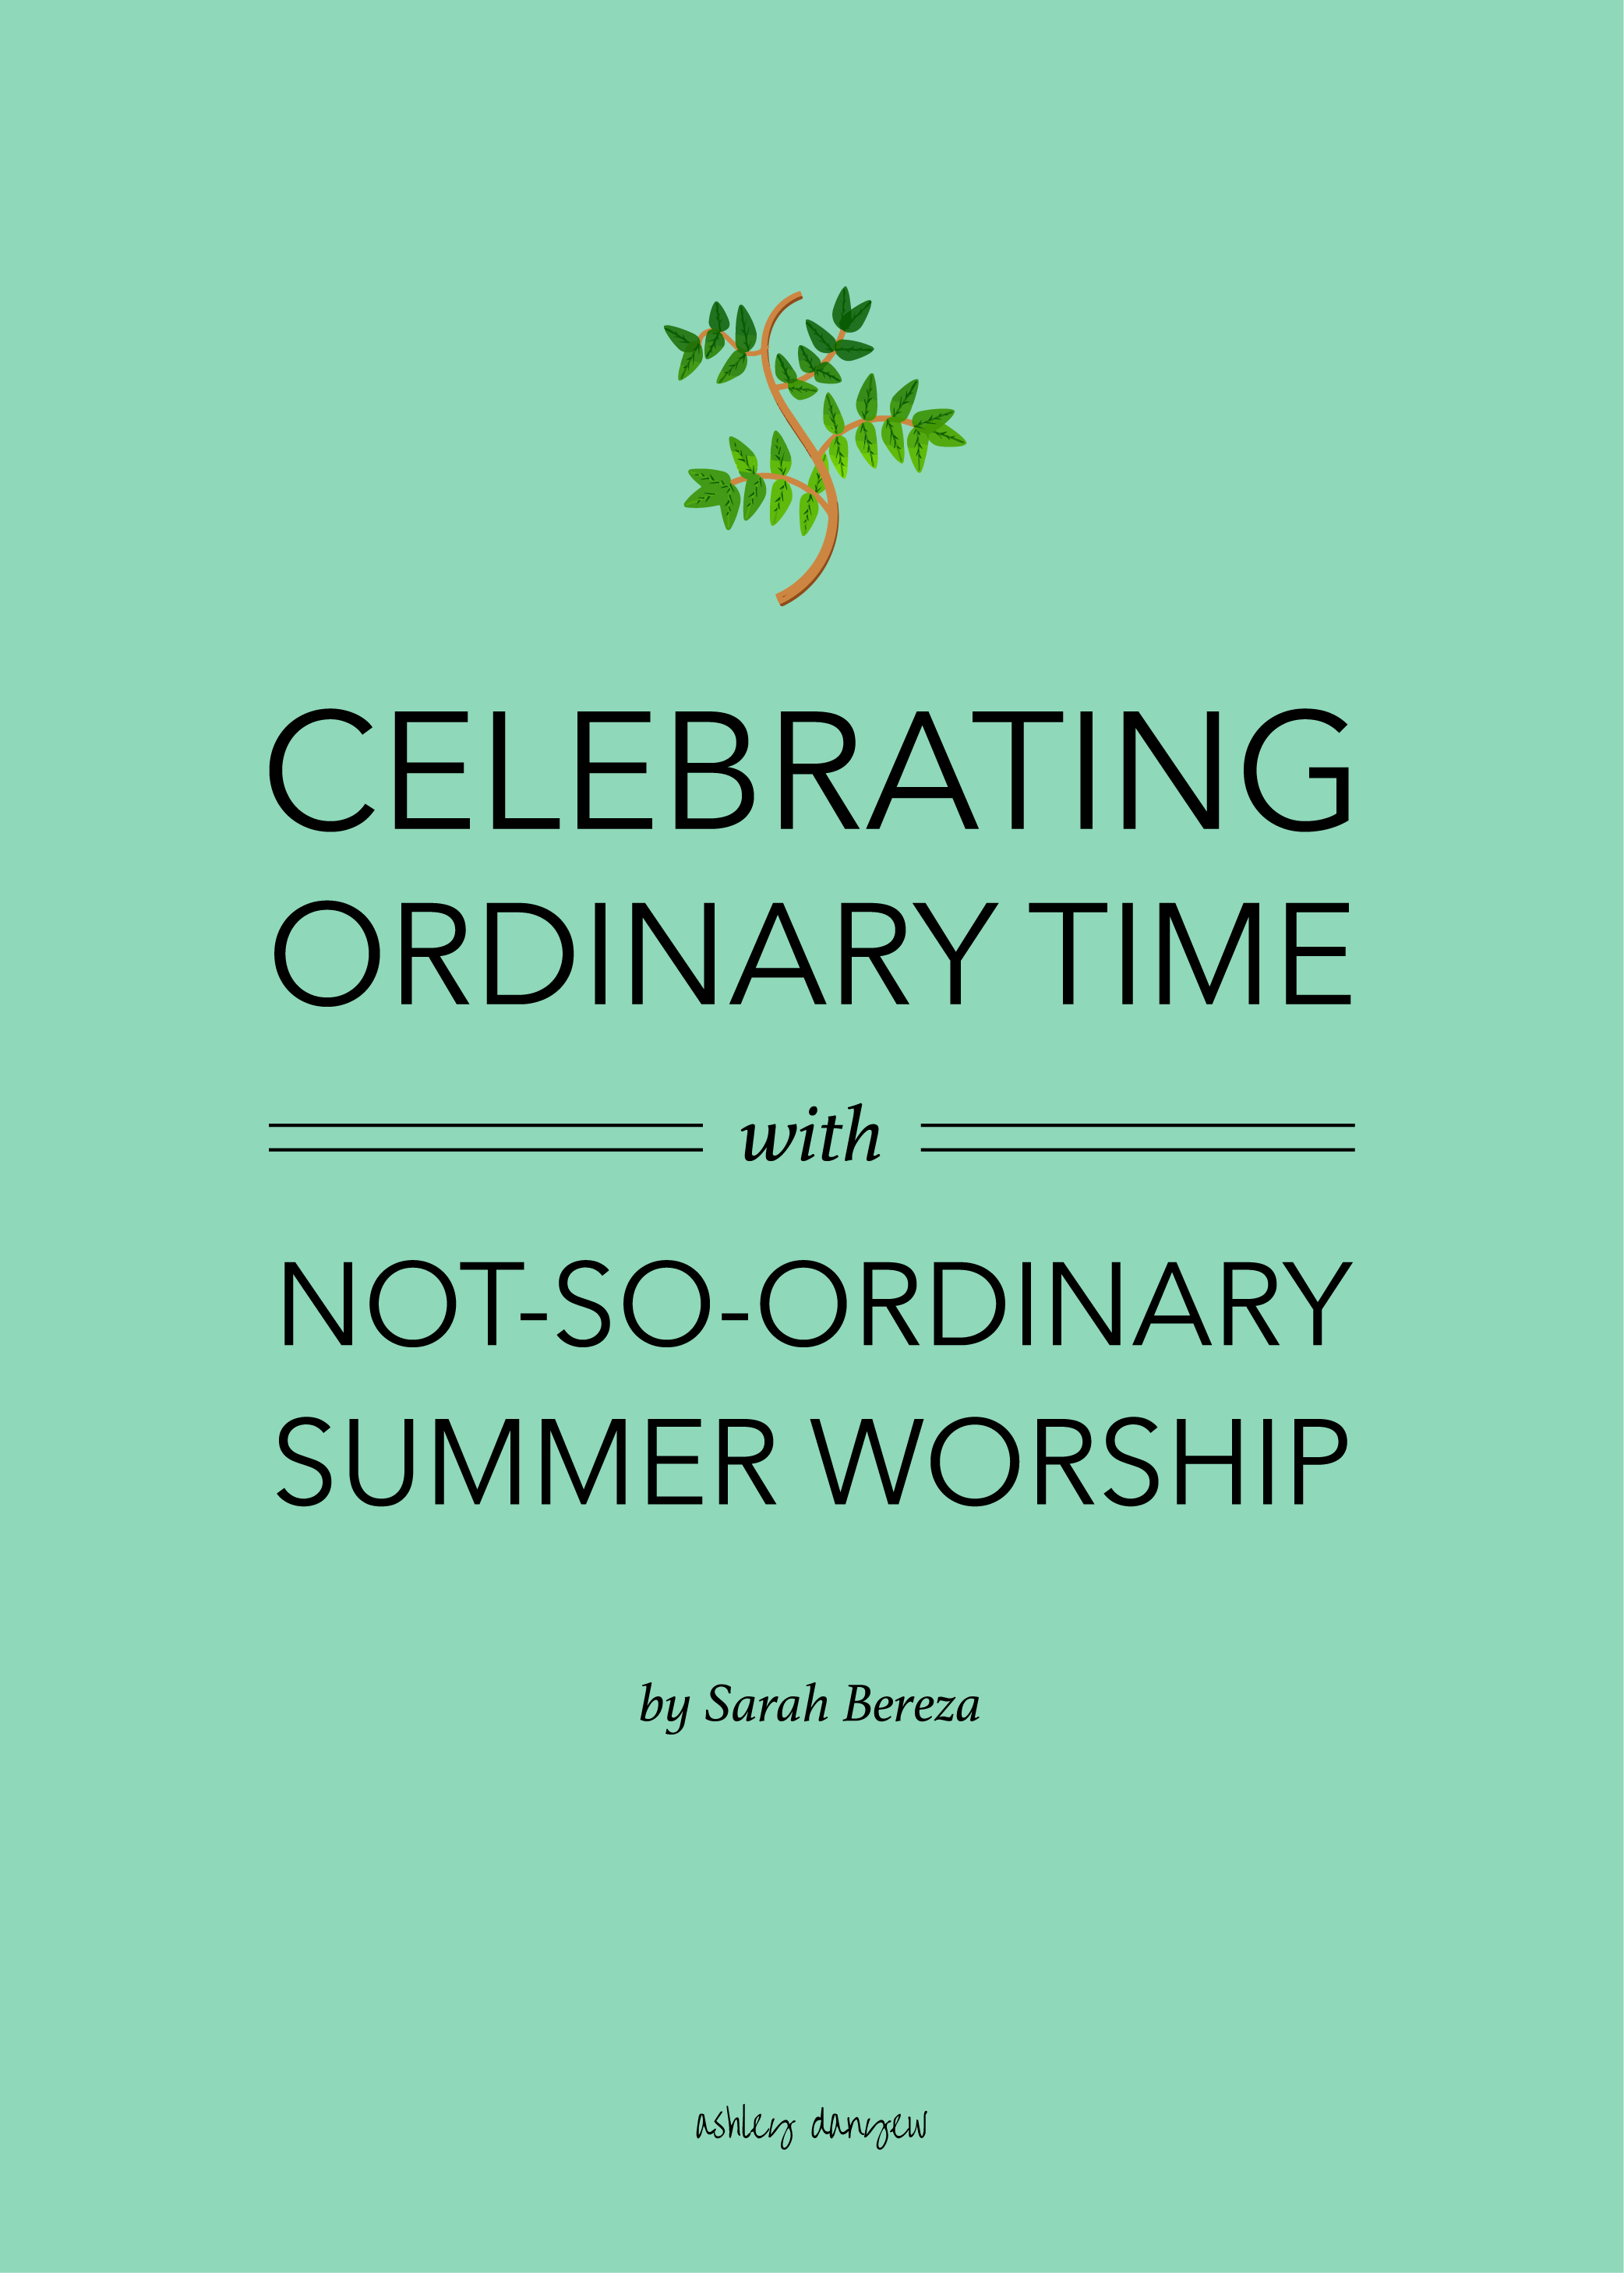 Copy of Celebrating Ordinary Time with Not-So-Orindary Summer Worship